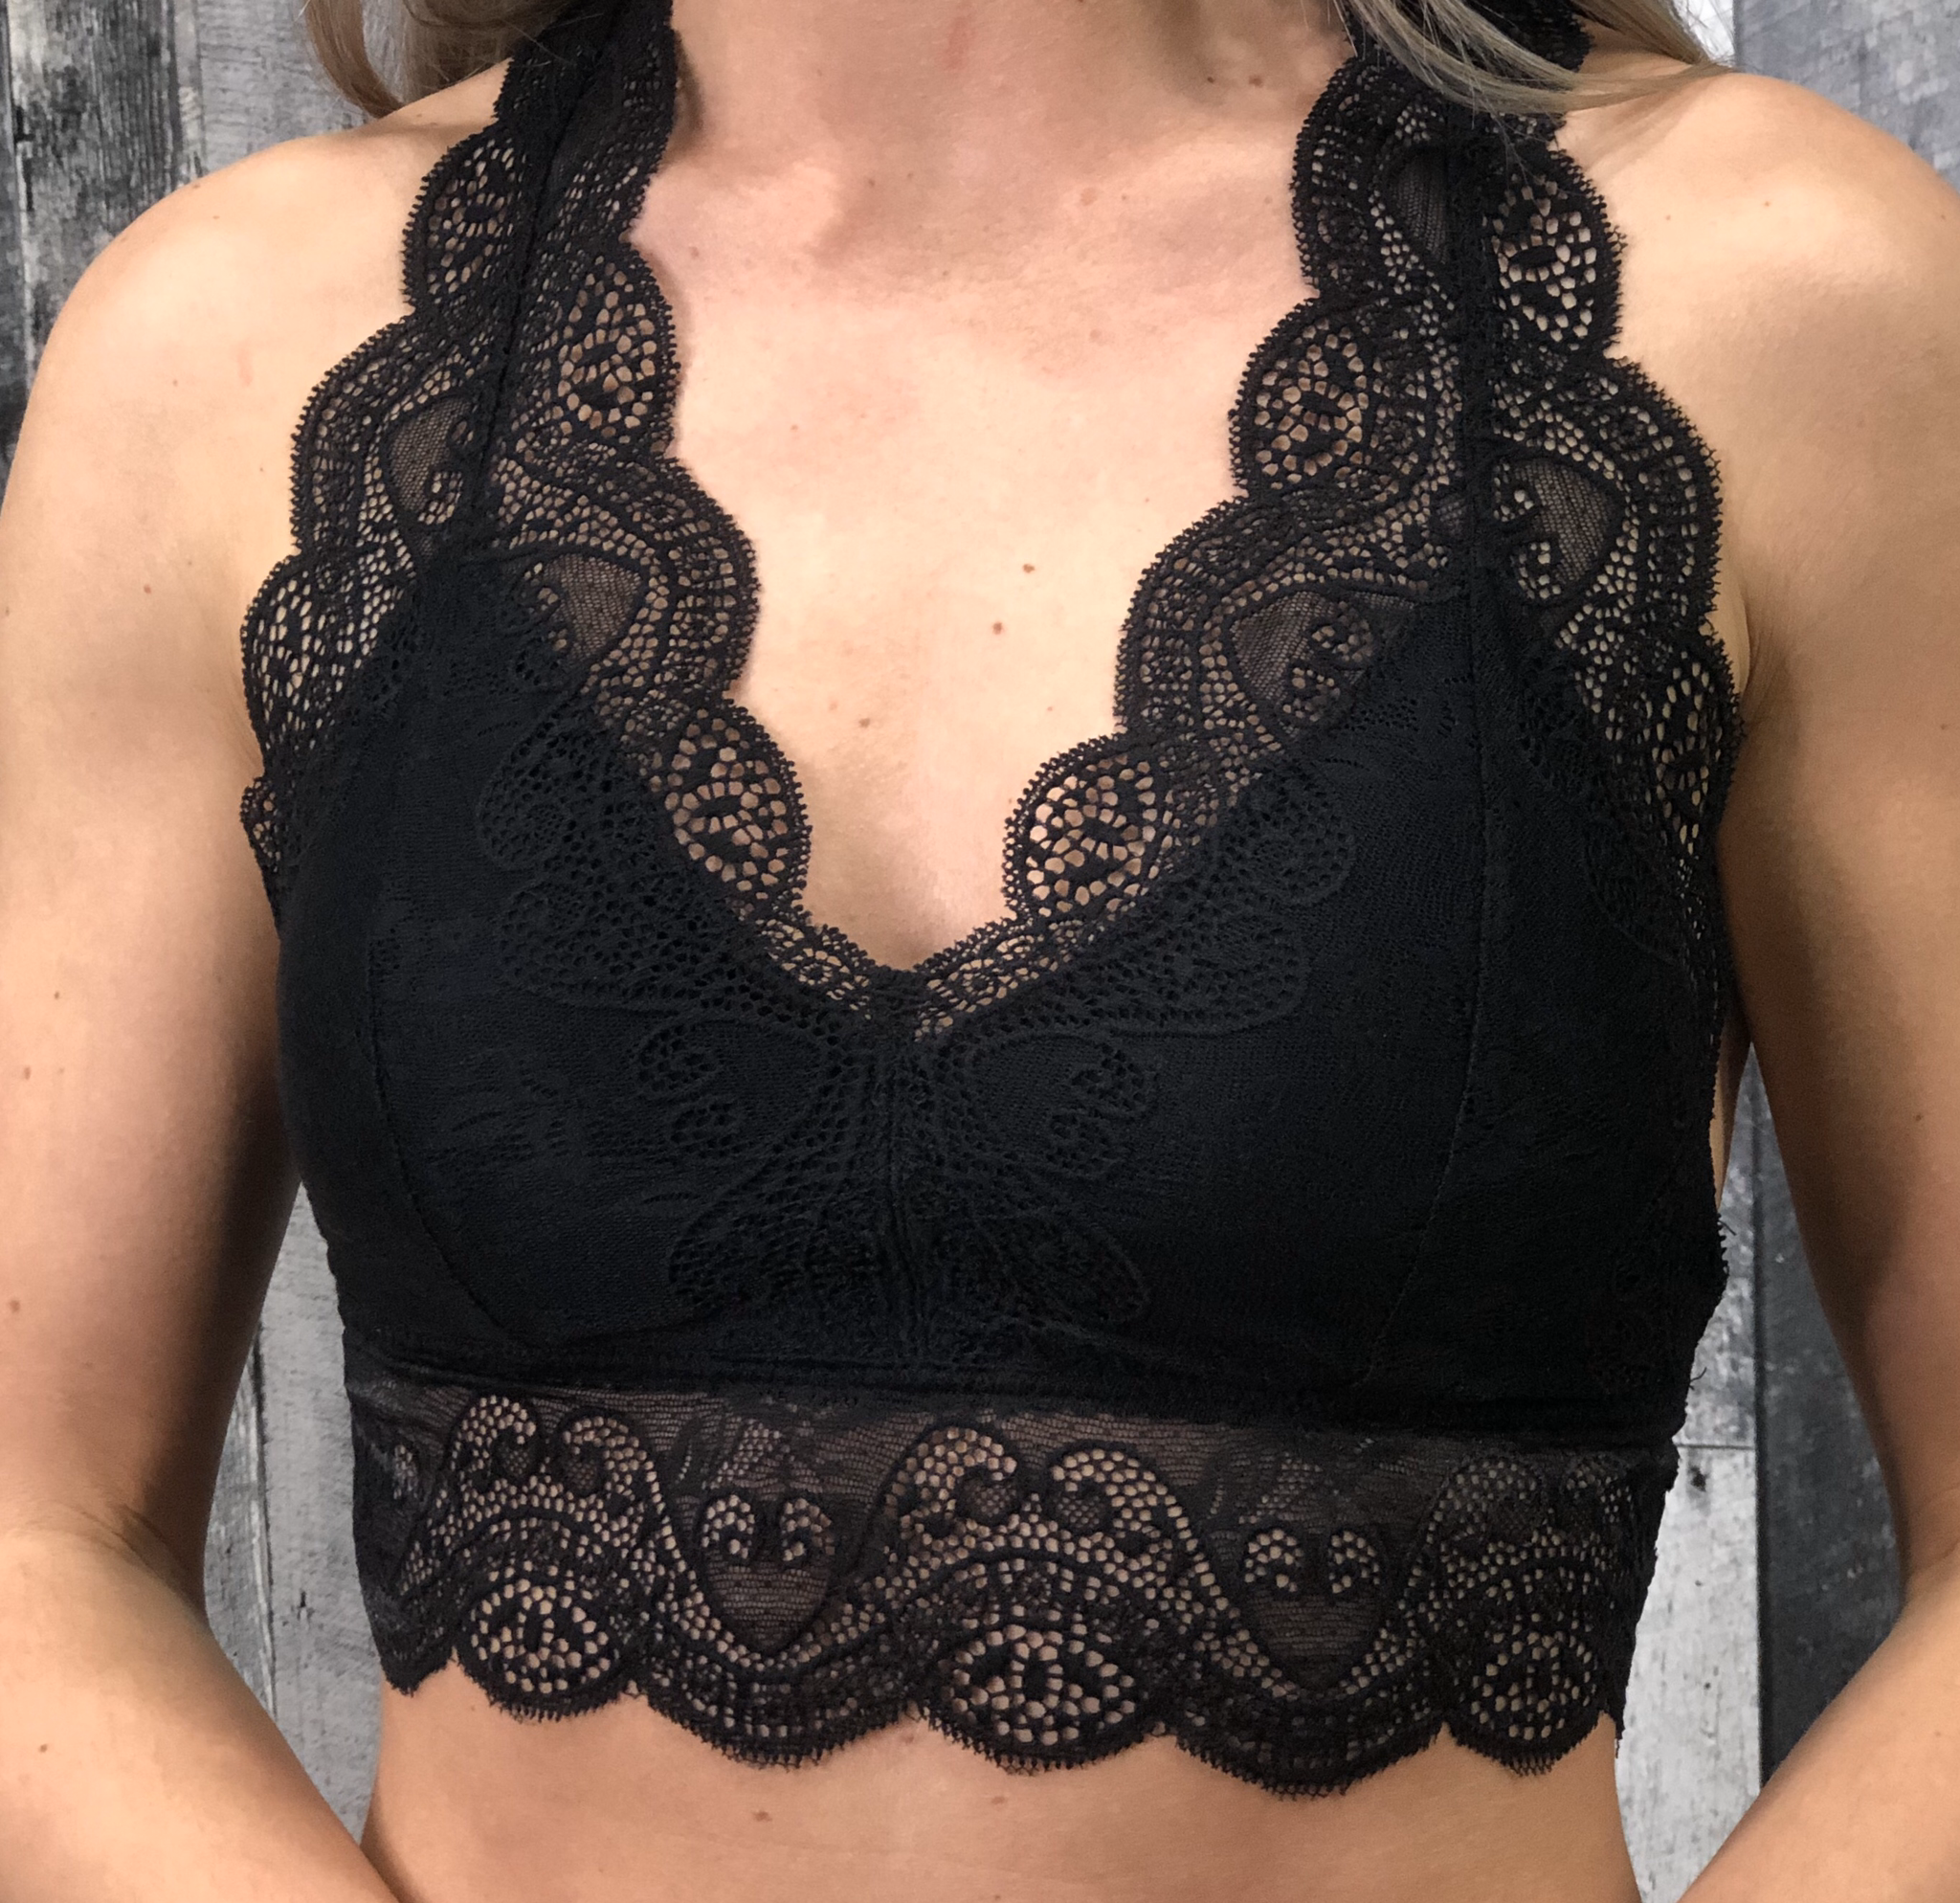 Padded Lace Bralette Black and White 84506